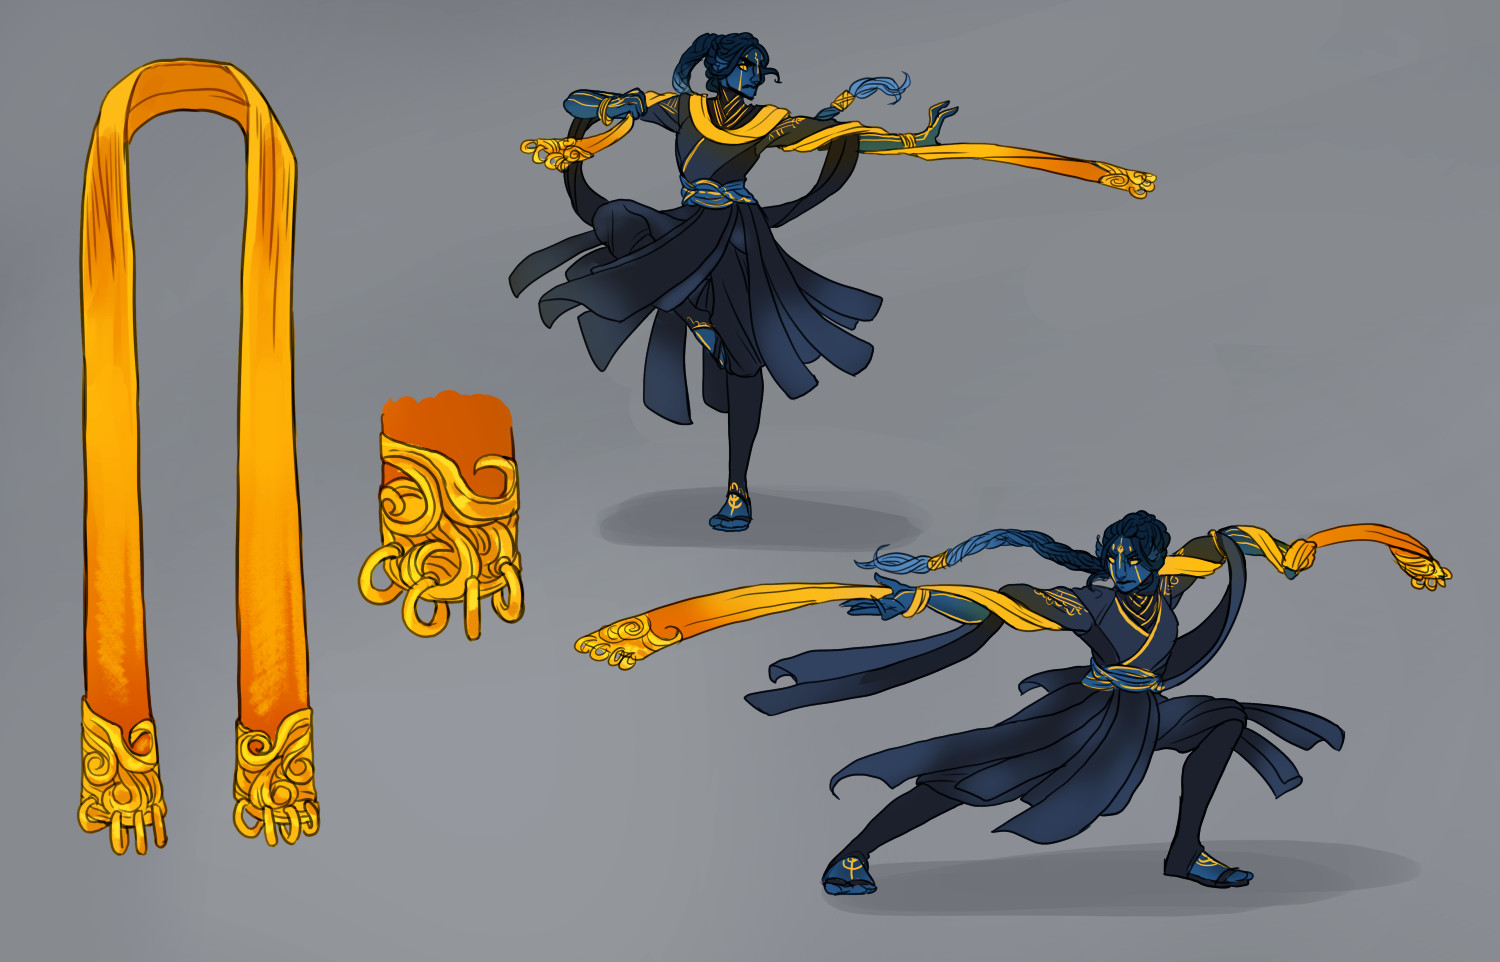 Sketches of fighting poses using the weighted battle scarf